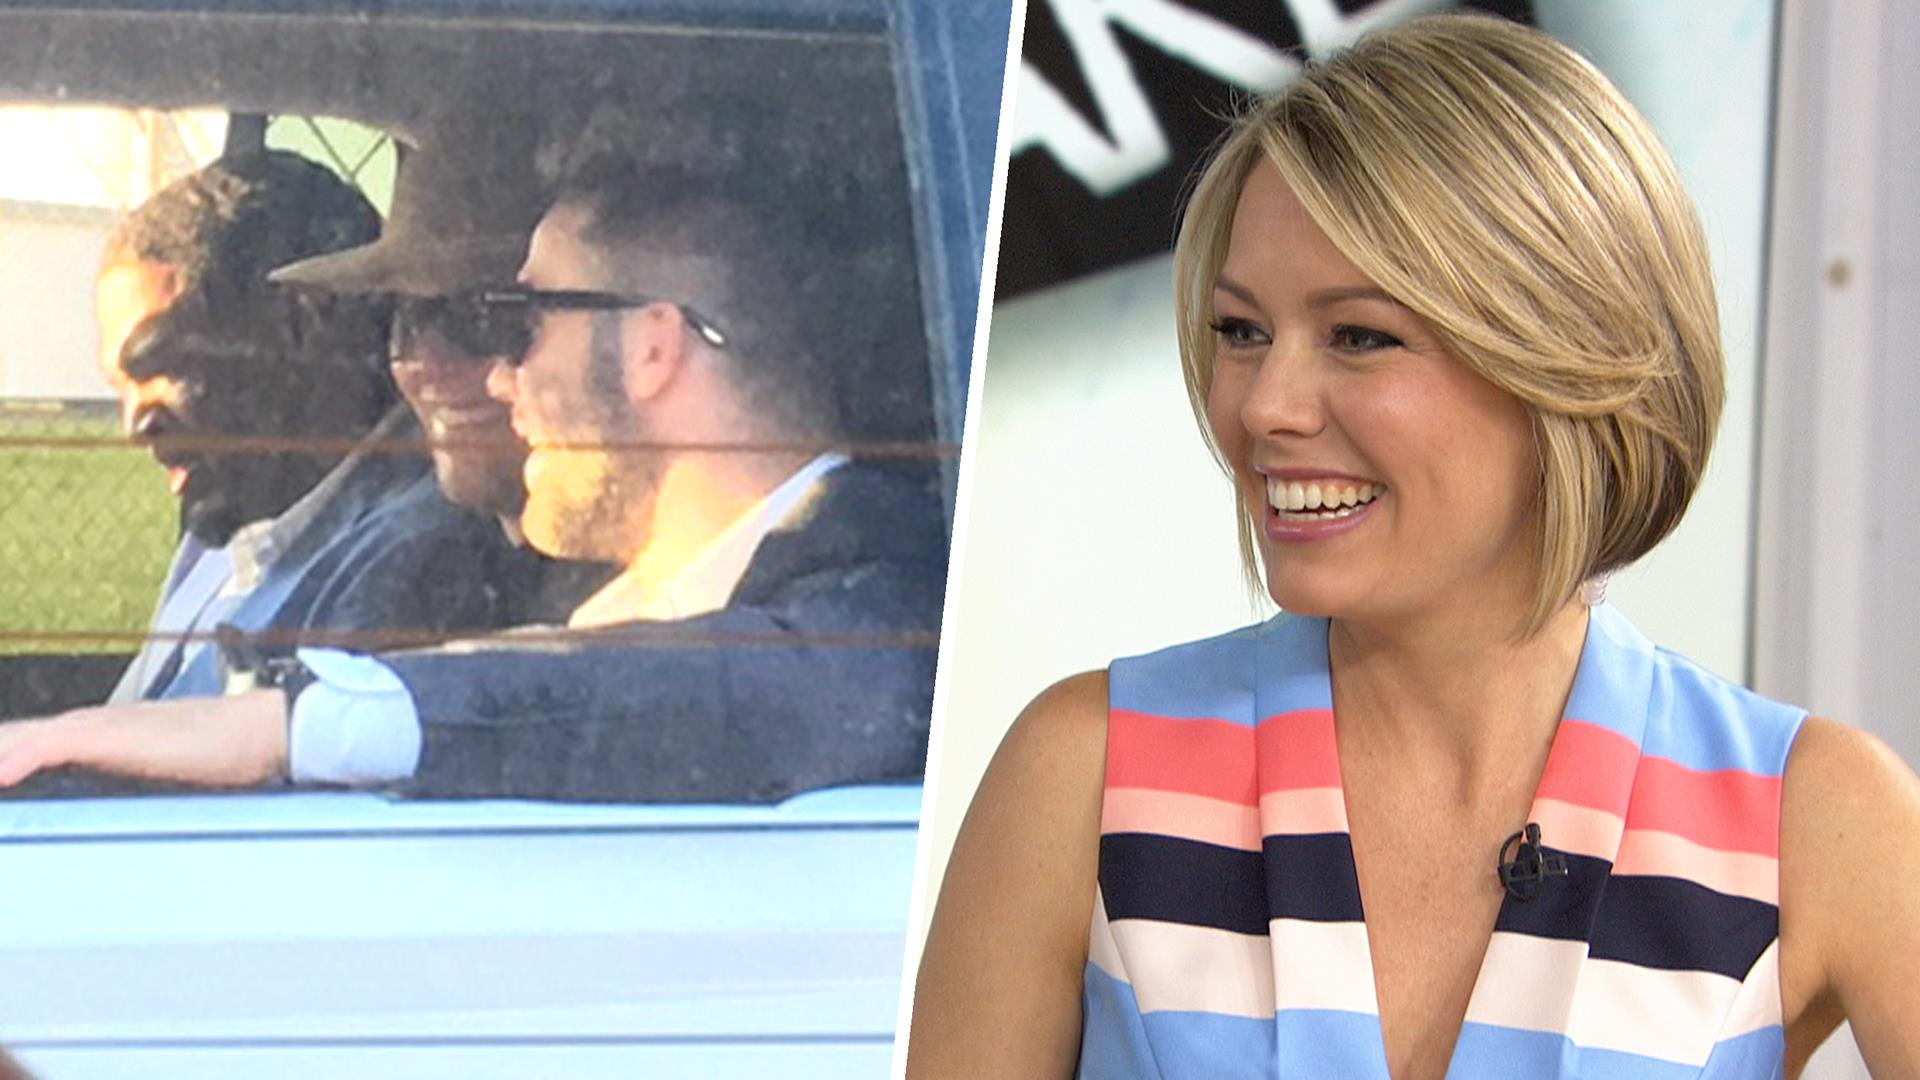 Dylan Dreyer Describes Her Close Encounter With Tom Brady